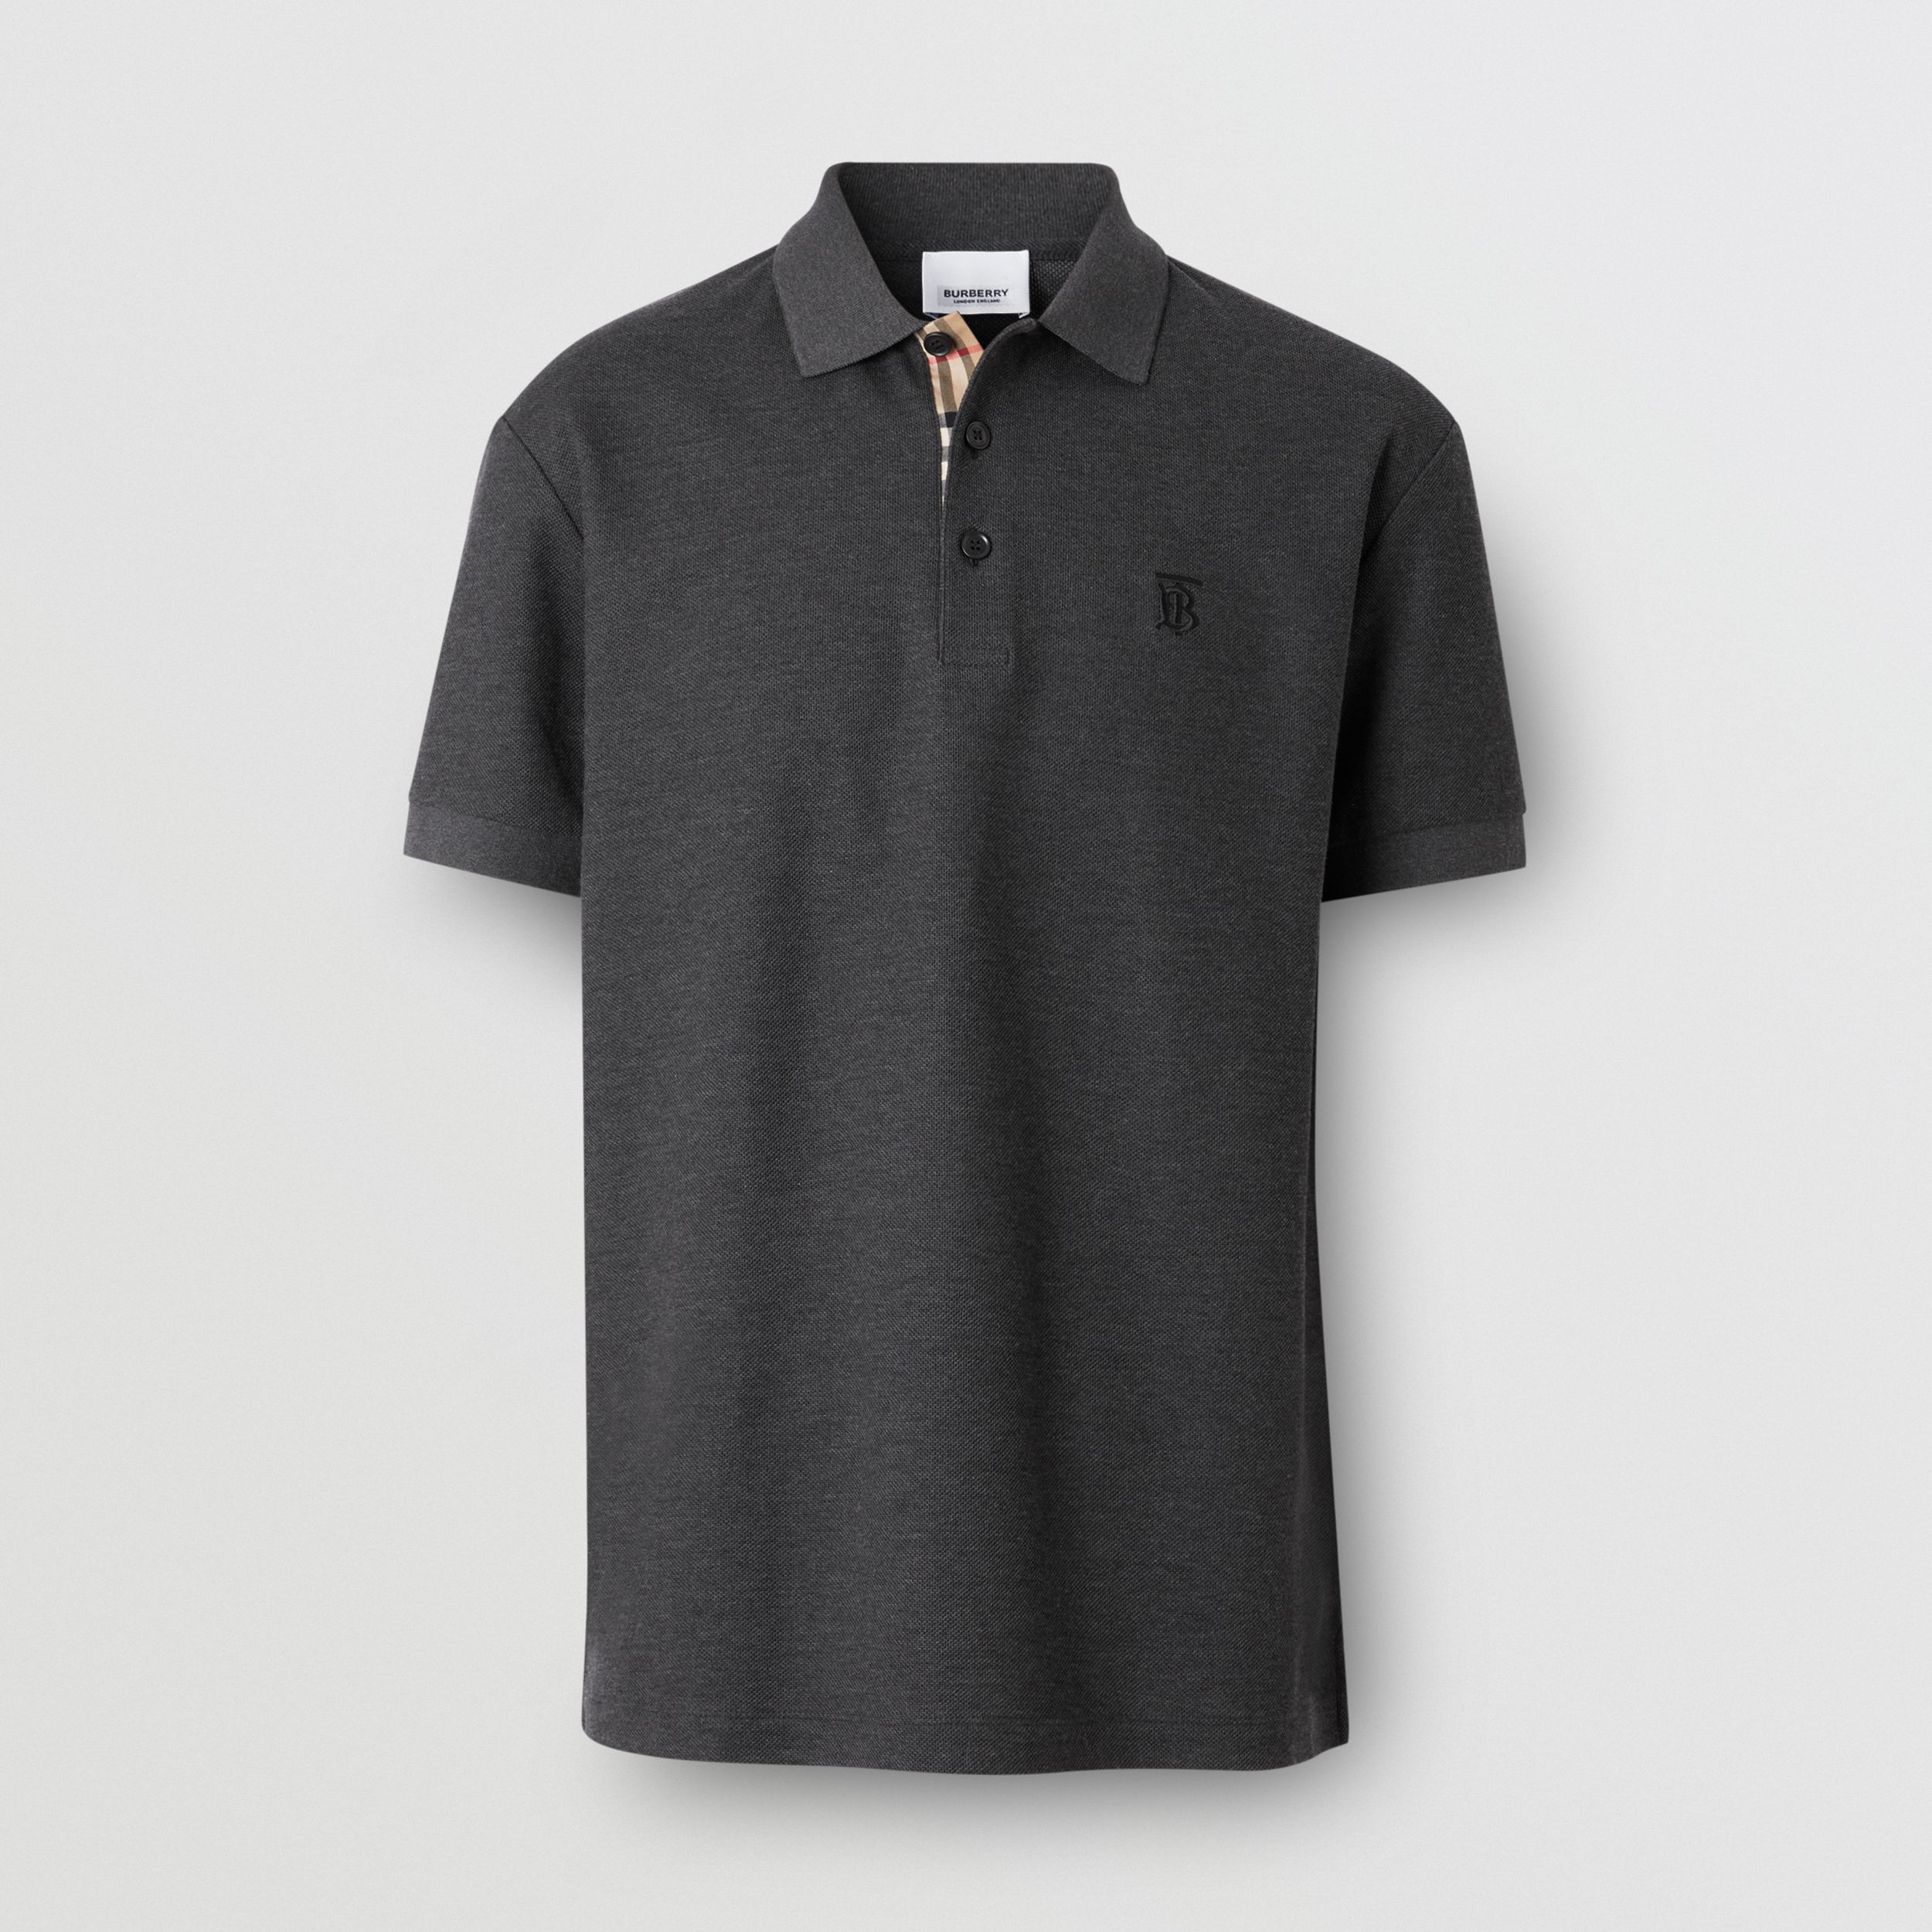 Monogram Motif Cotton Piqué Polo Shirt in Charcoal Melange - Men | Burberry - 4